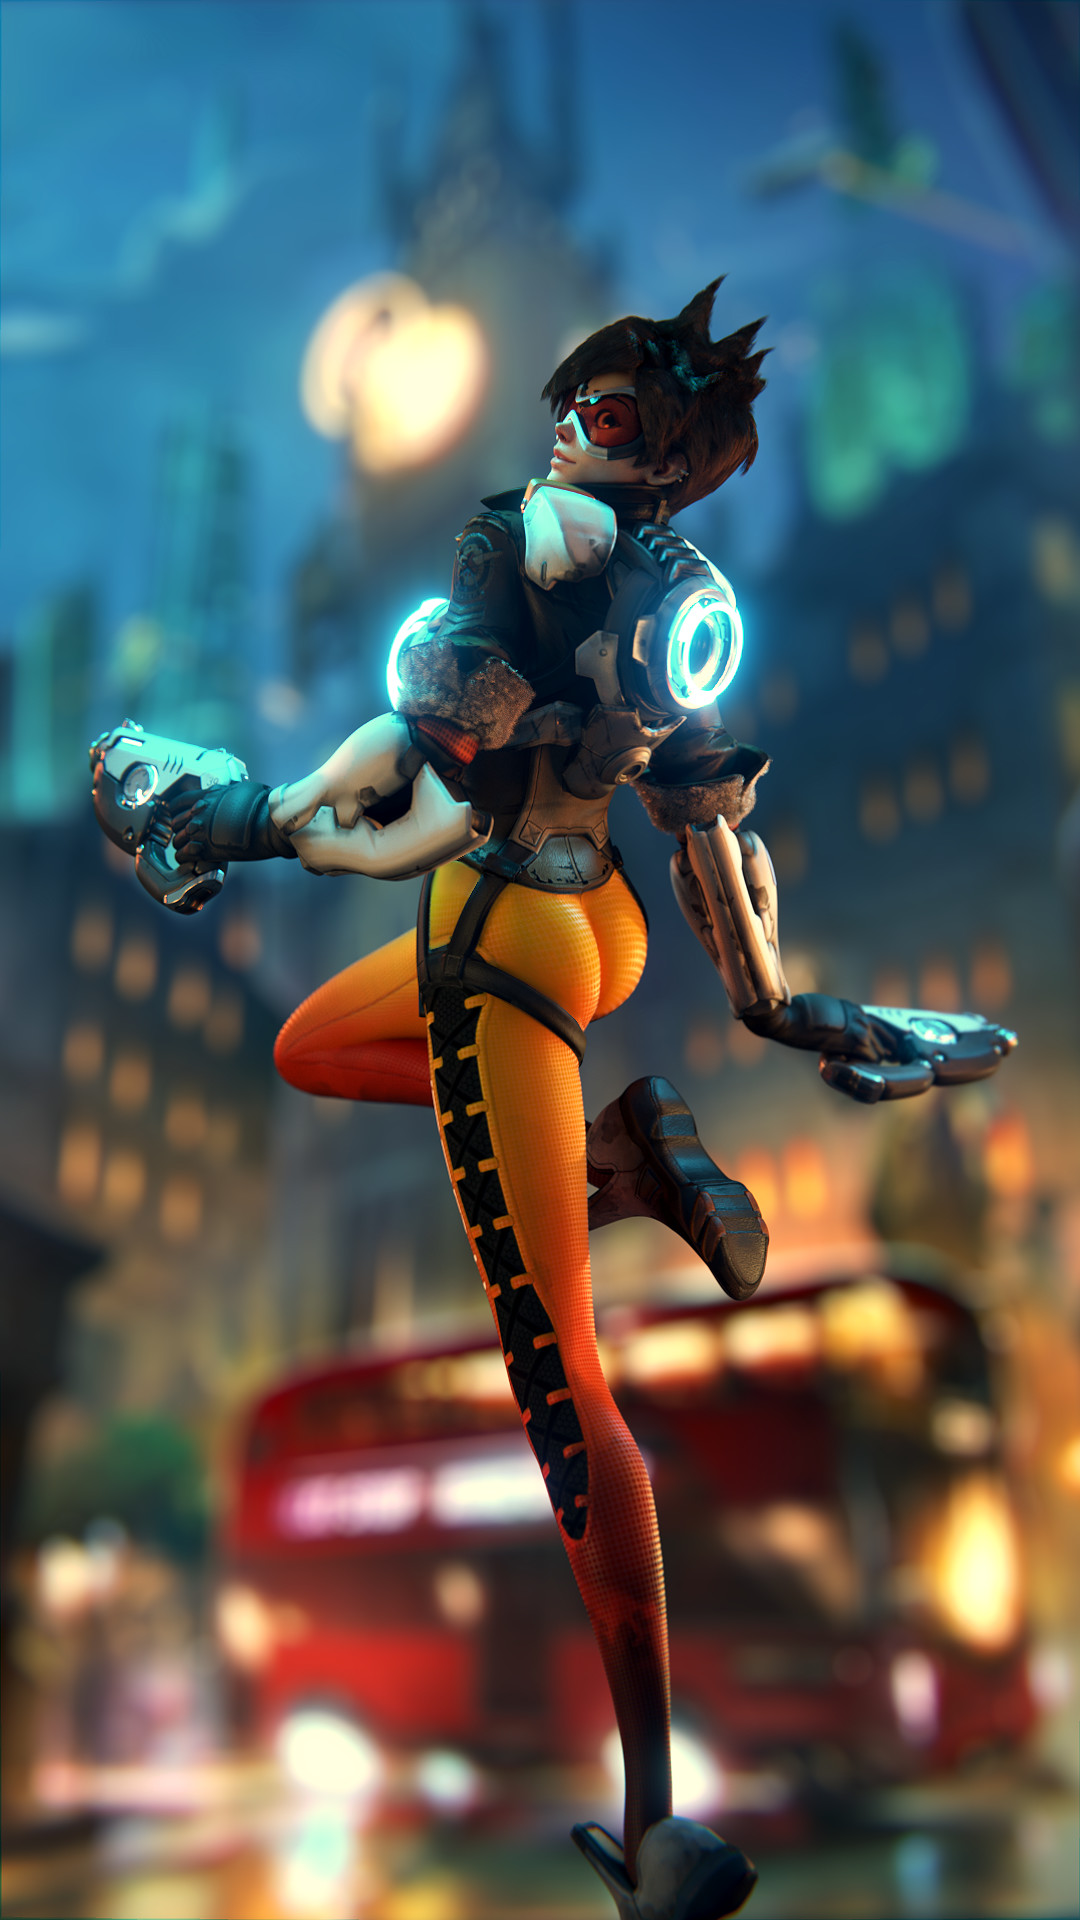 Tracer Artwork Overwatch Video Game Wallpaper Hd Image Picture